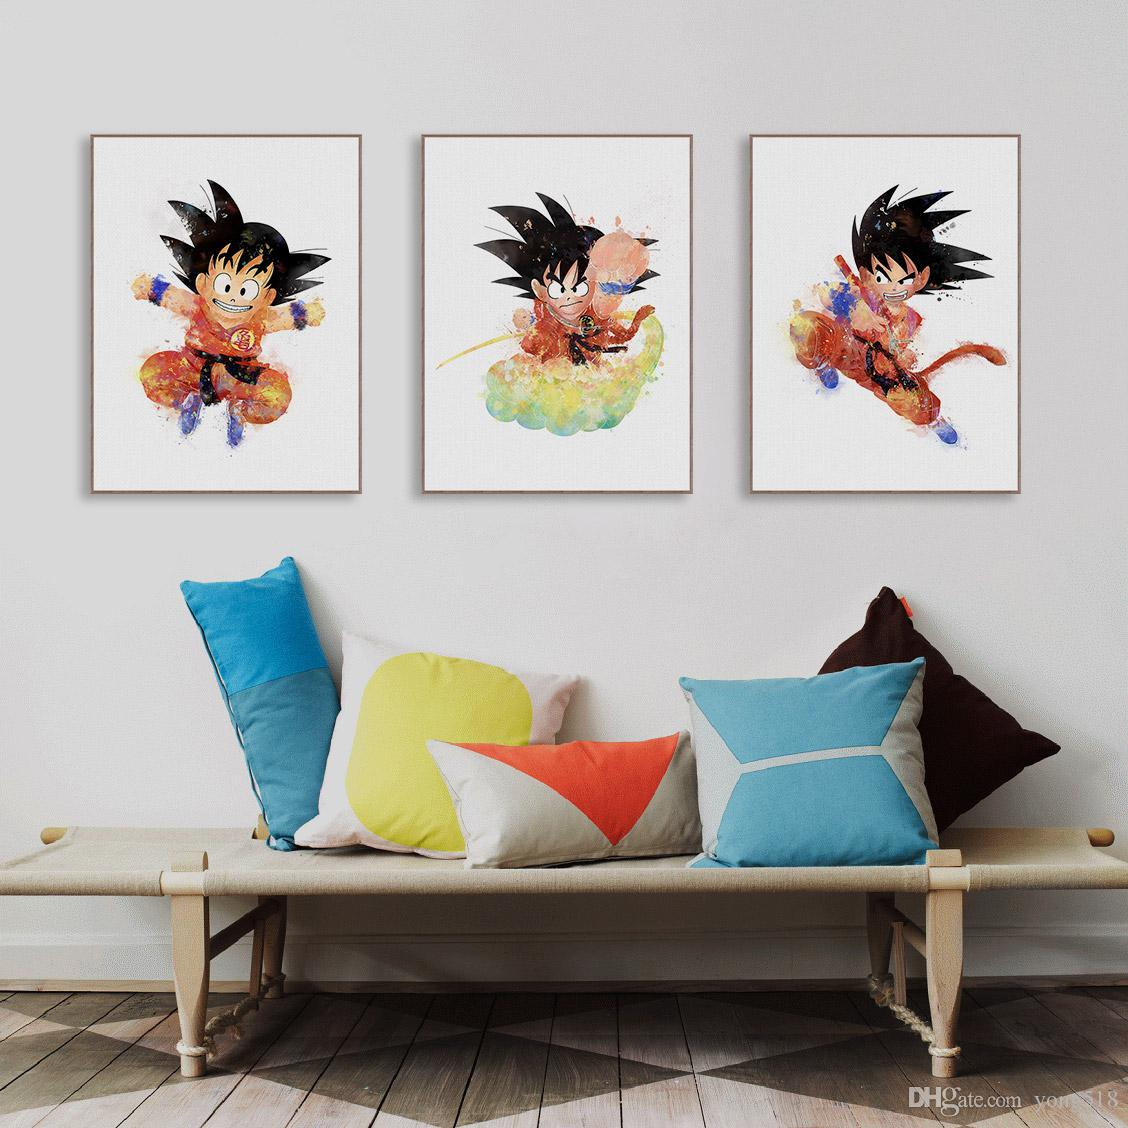 Japanese Anime Wall Decor Online Shopping   3 Pieces Modern Watercolor  Japanese Anime Dragon Ball Canvas